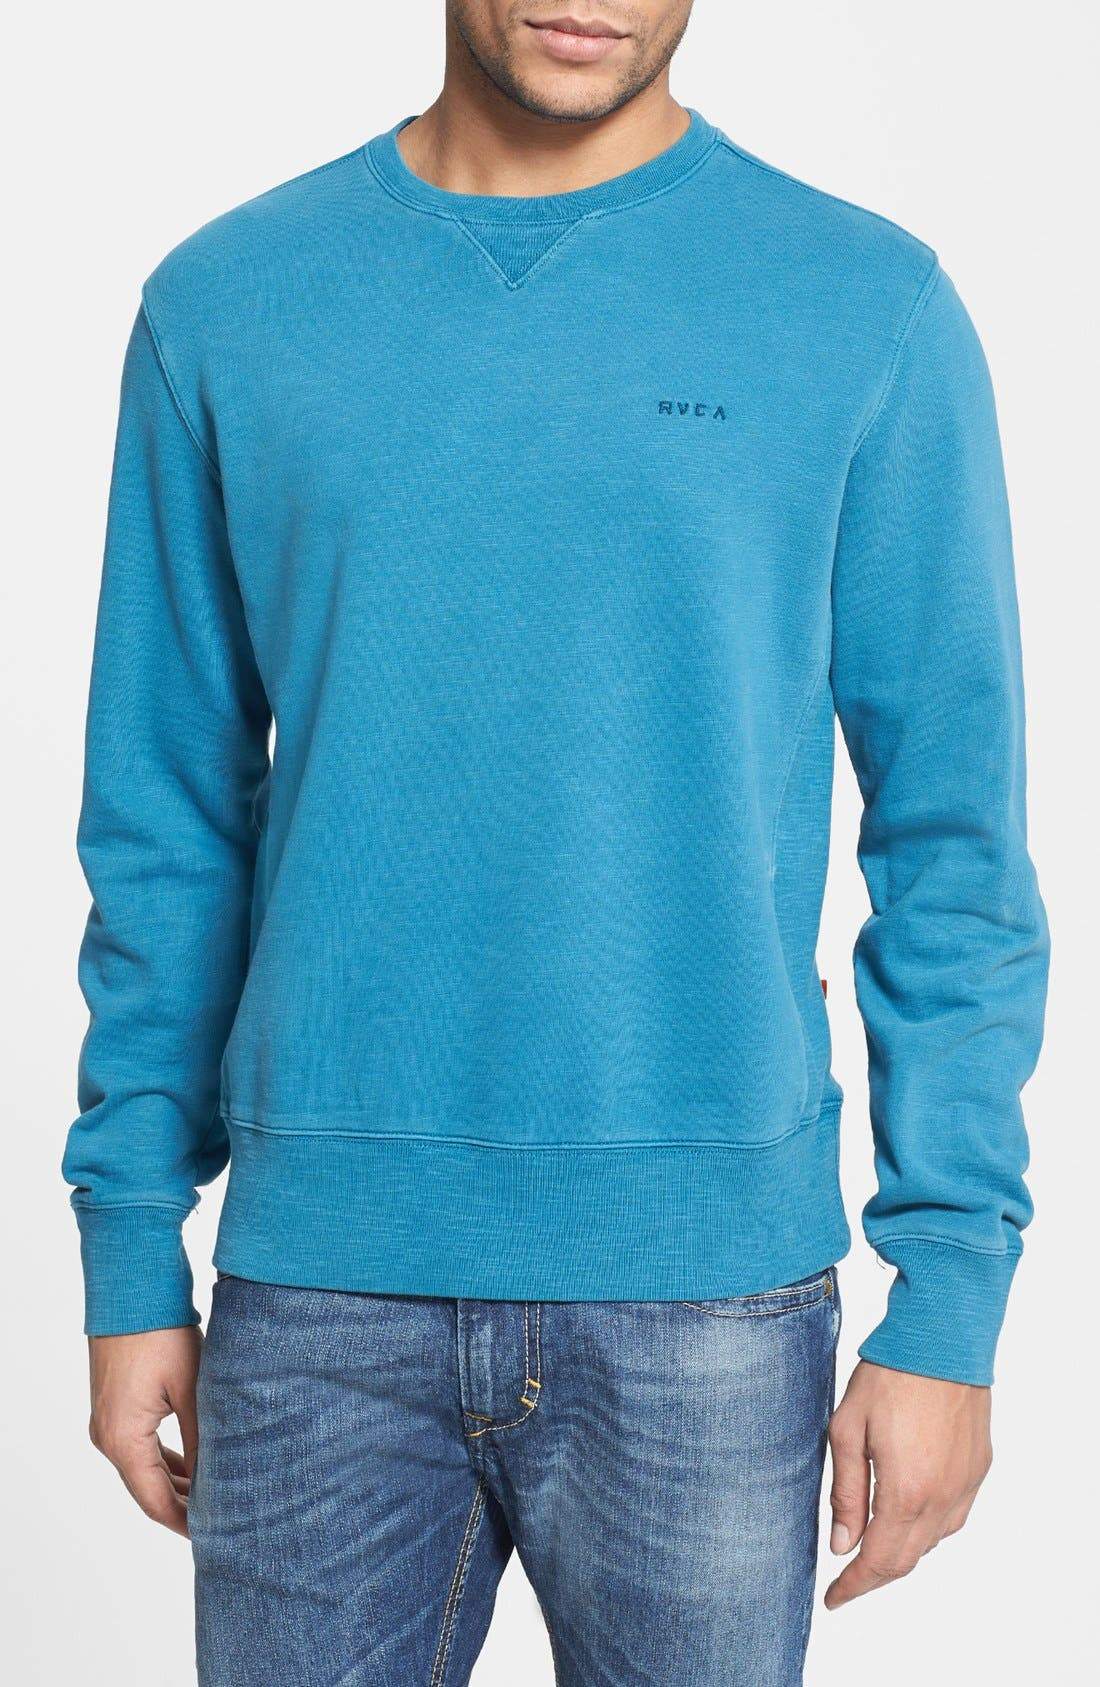 Alternate Image 1 Selected - RVCA 'Desert Sun' Crewneck Sweatshirt